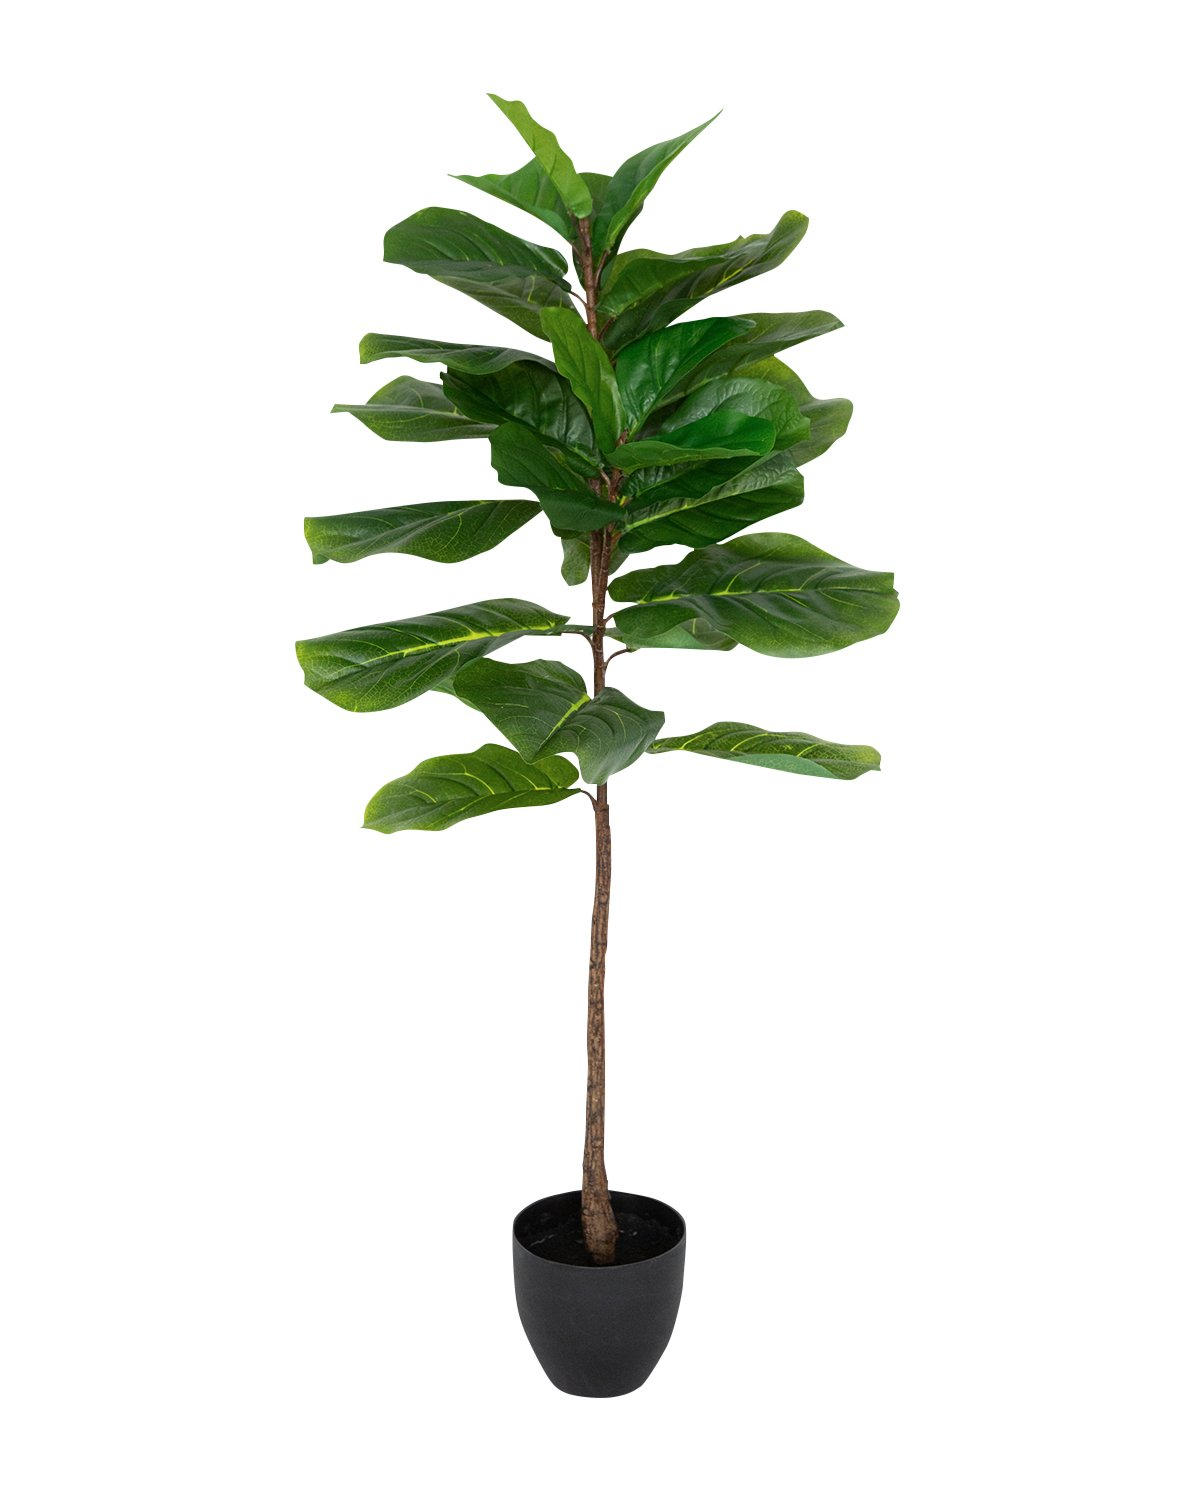 Faux_Fiddle_Leaf_Tree_1.jpg